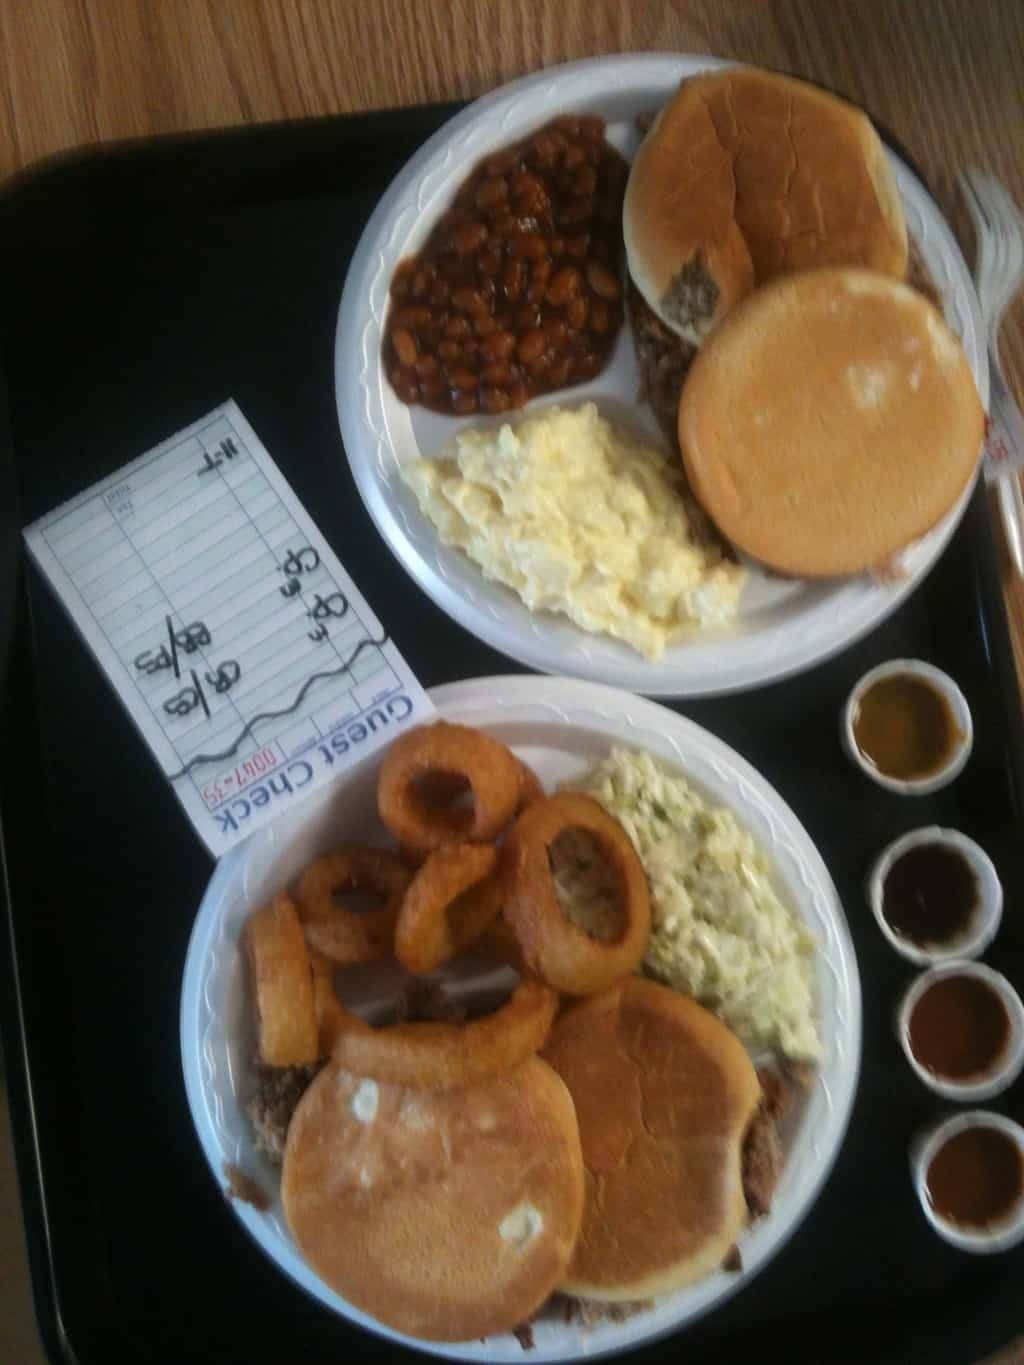 Little Pig's Myrtle Beach - Plates